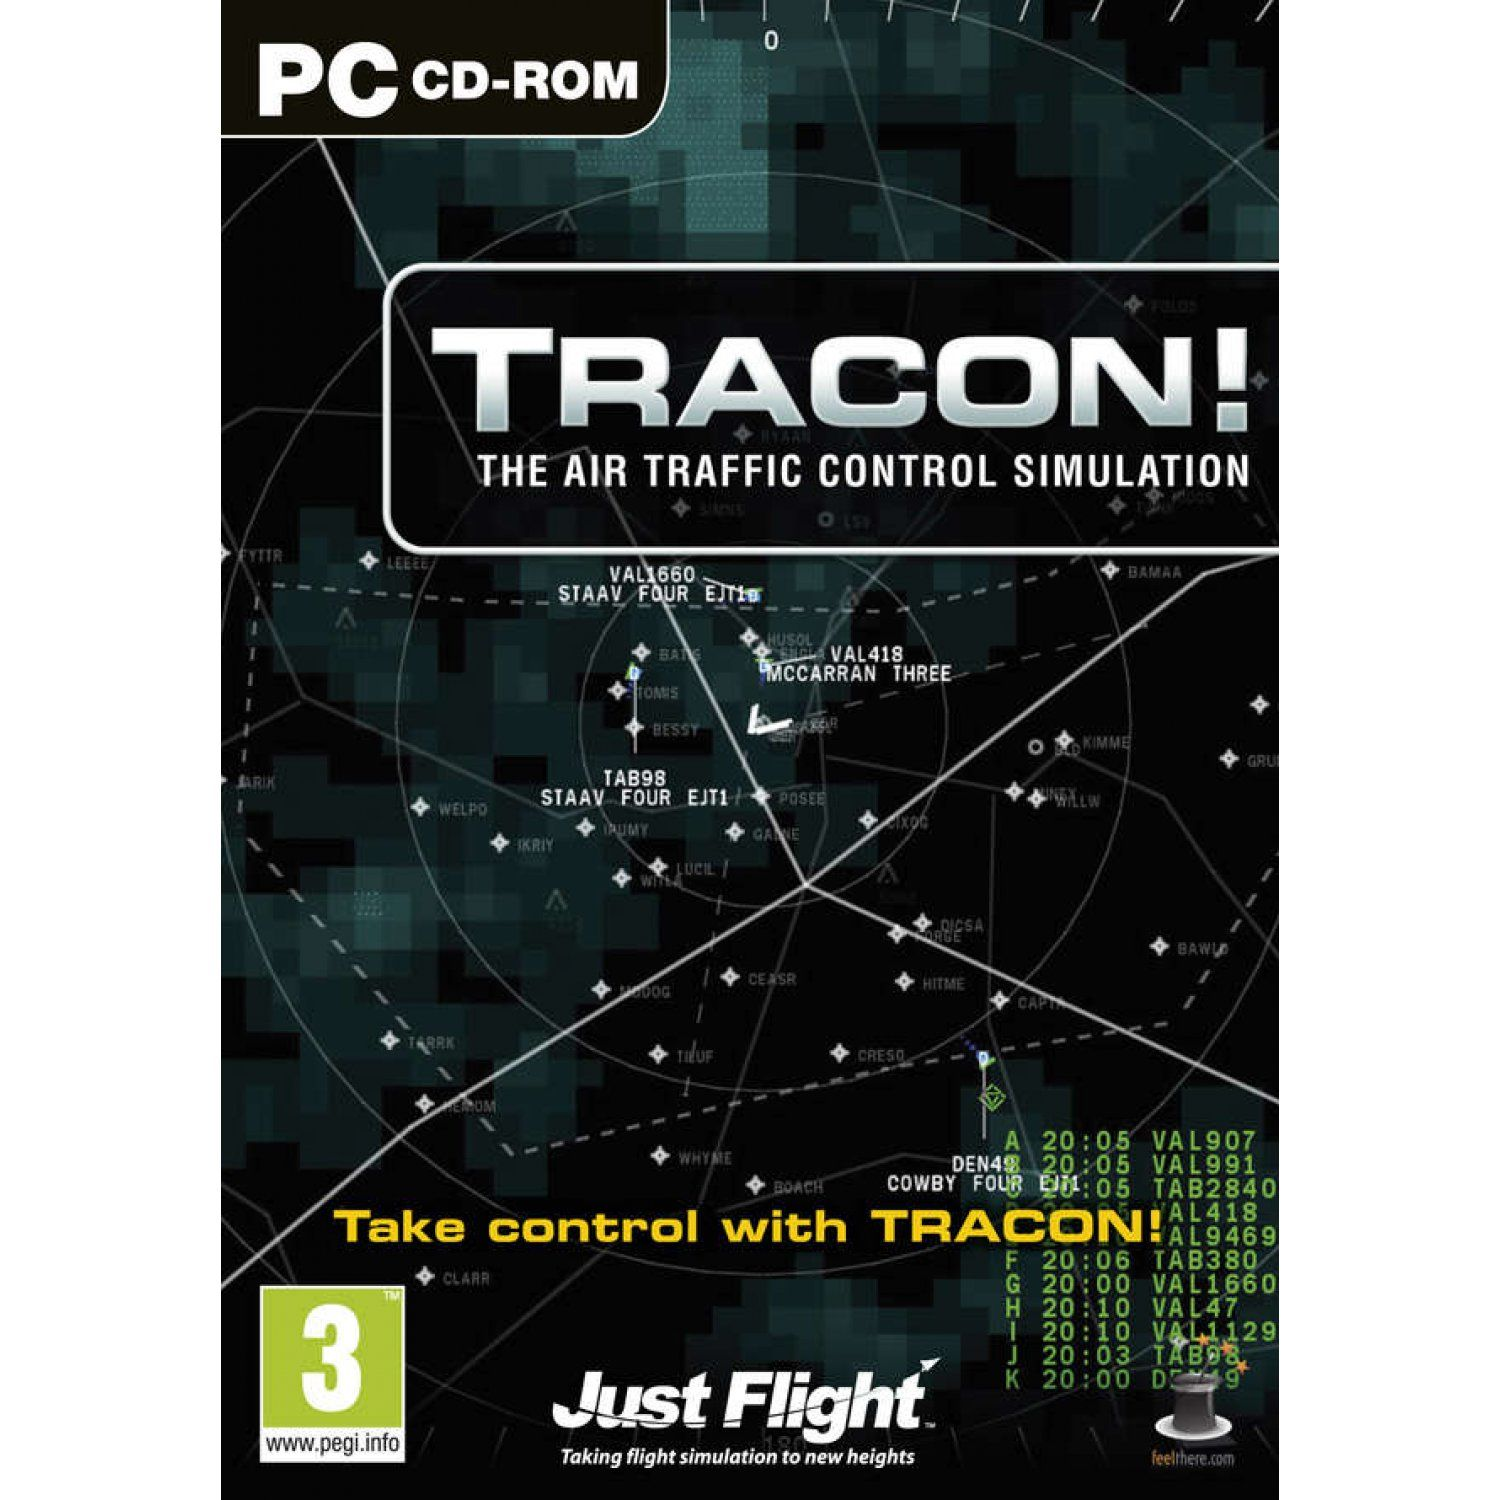 Tracon! The Air Traffic Control Simulation (With images